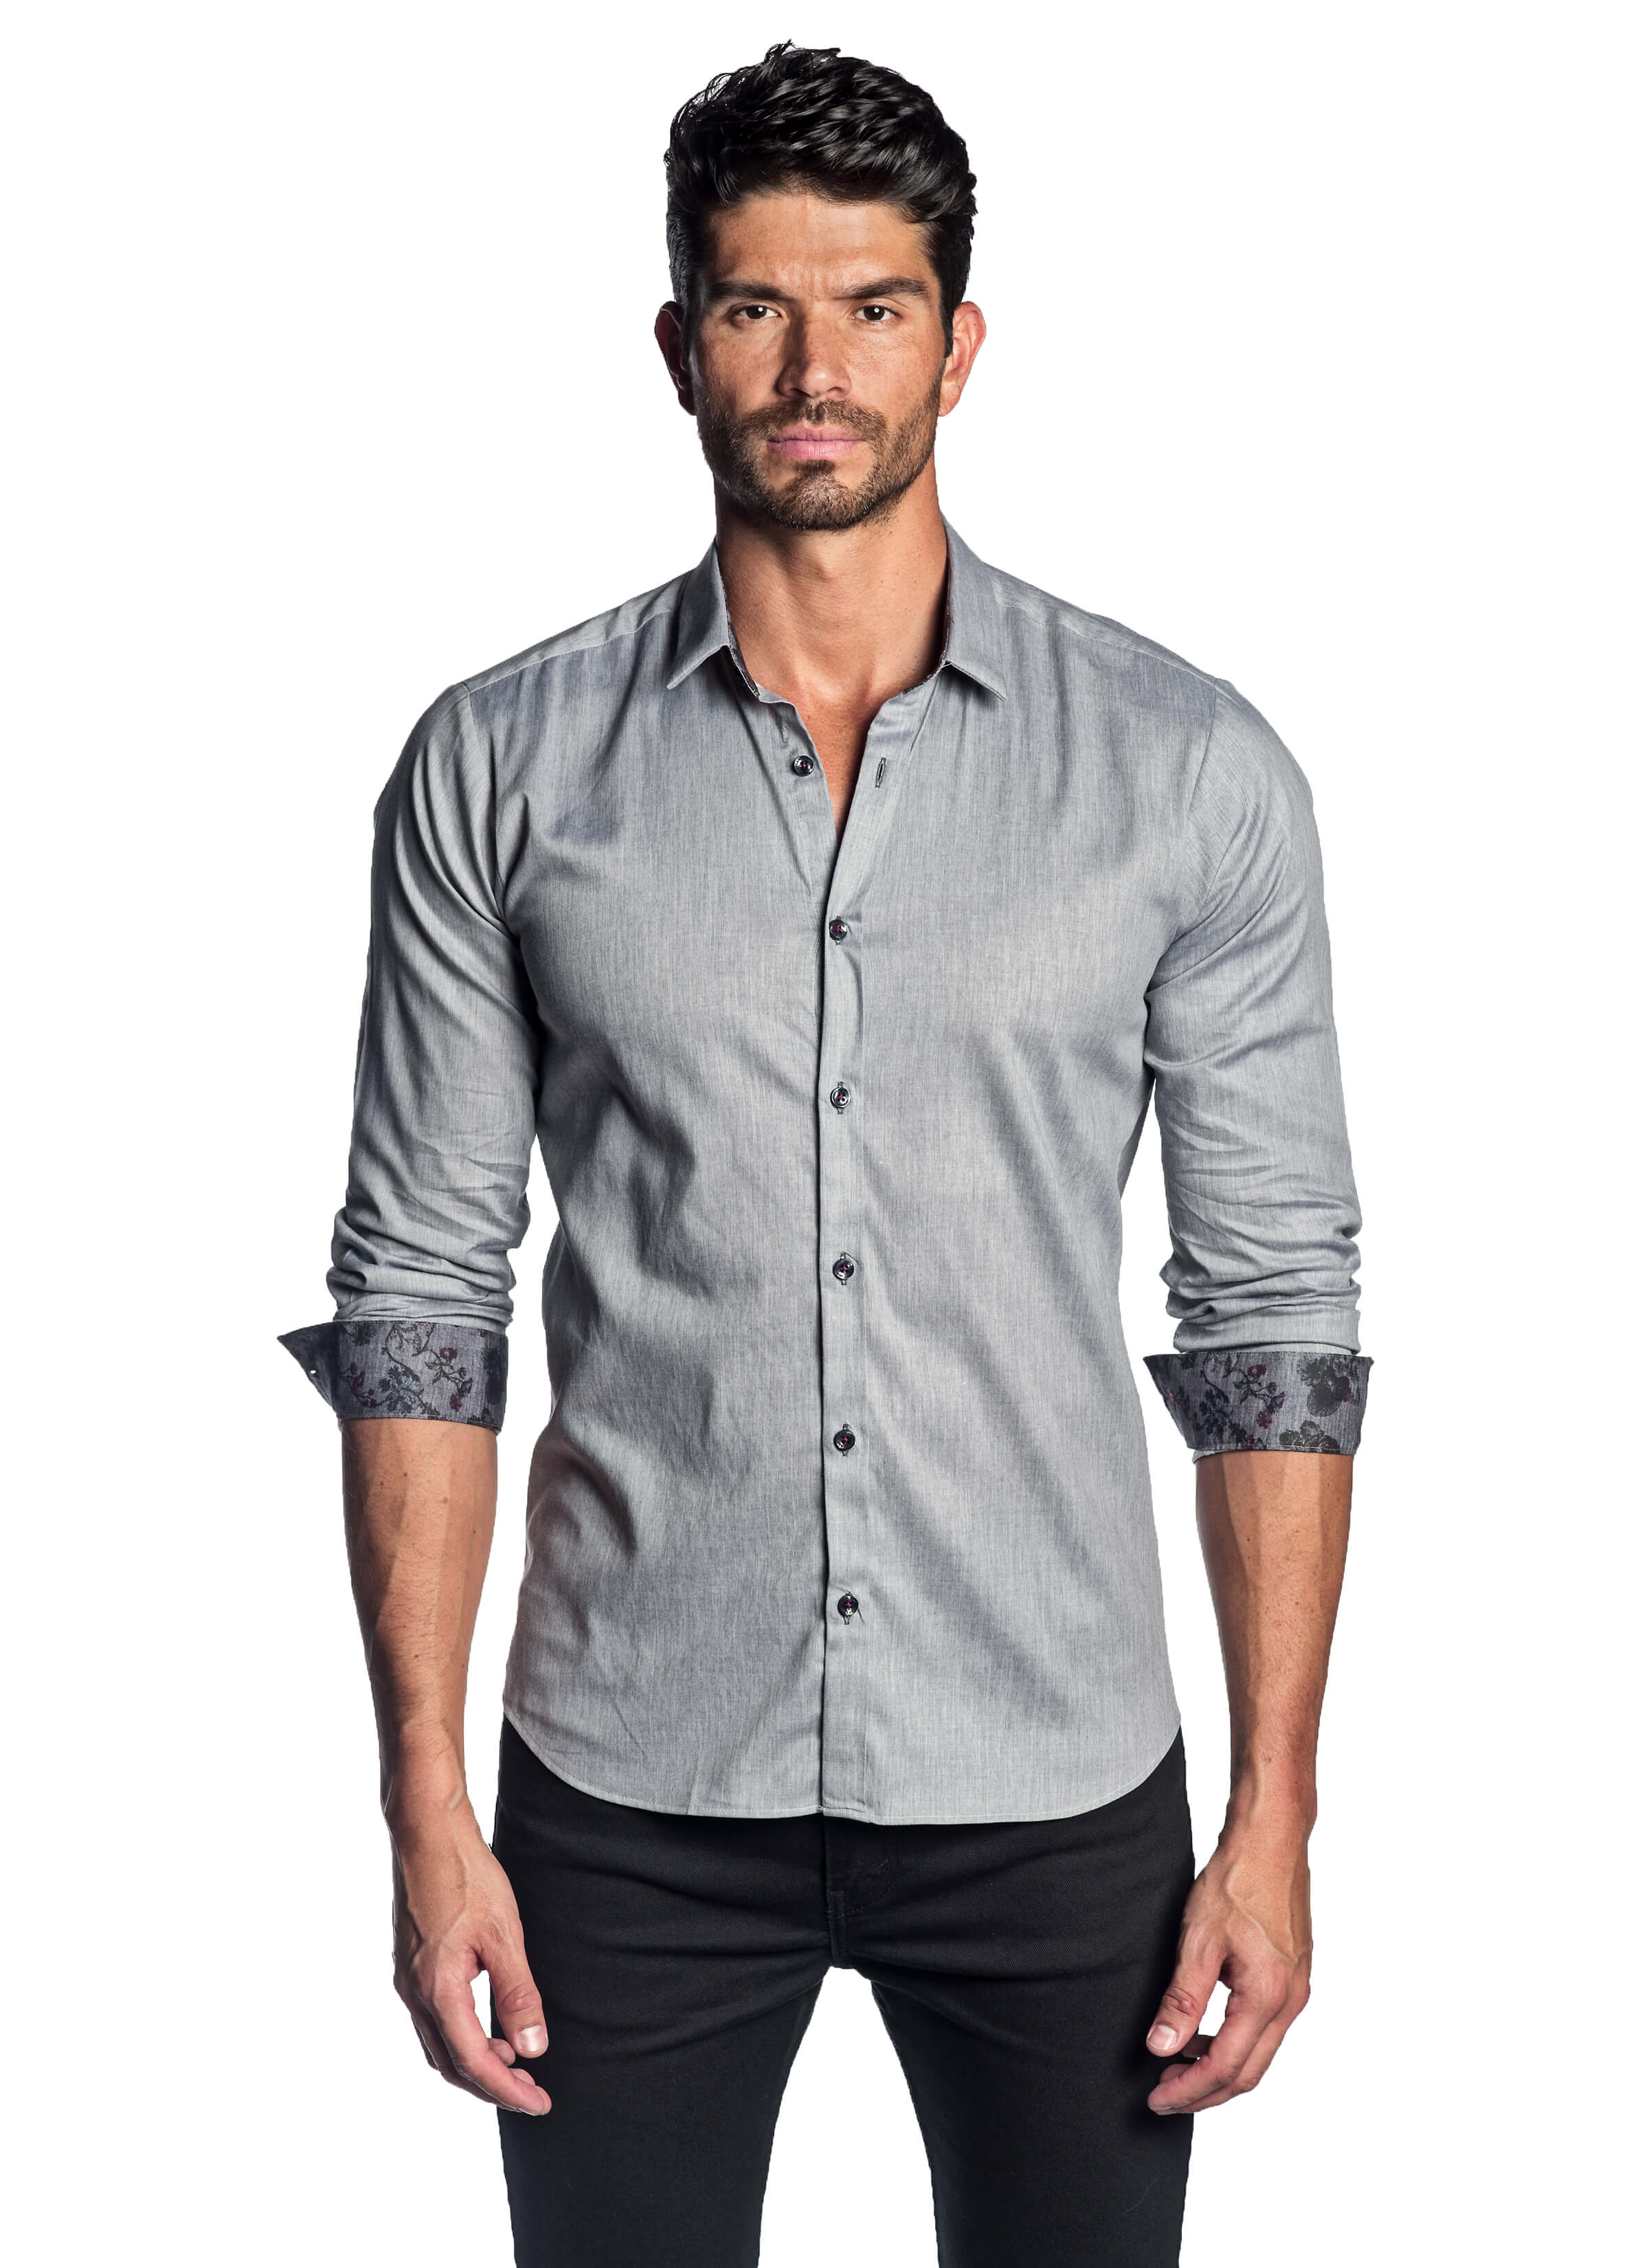 Grey Melange Solid Shirt with Floral Trim AH-T-2014 - Jared Lang